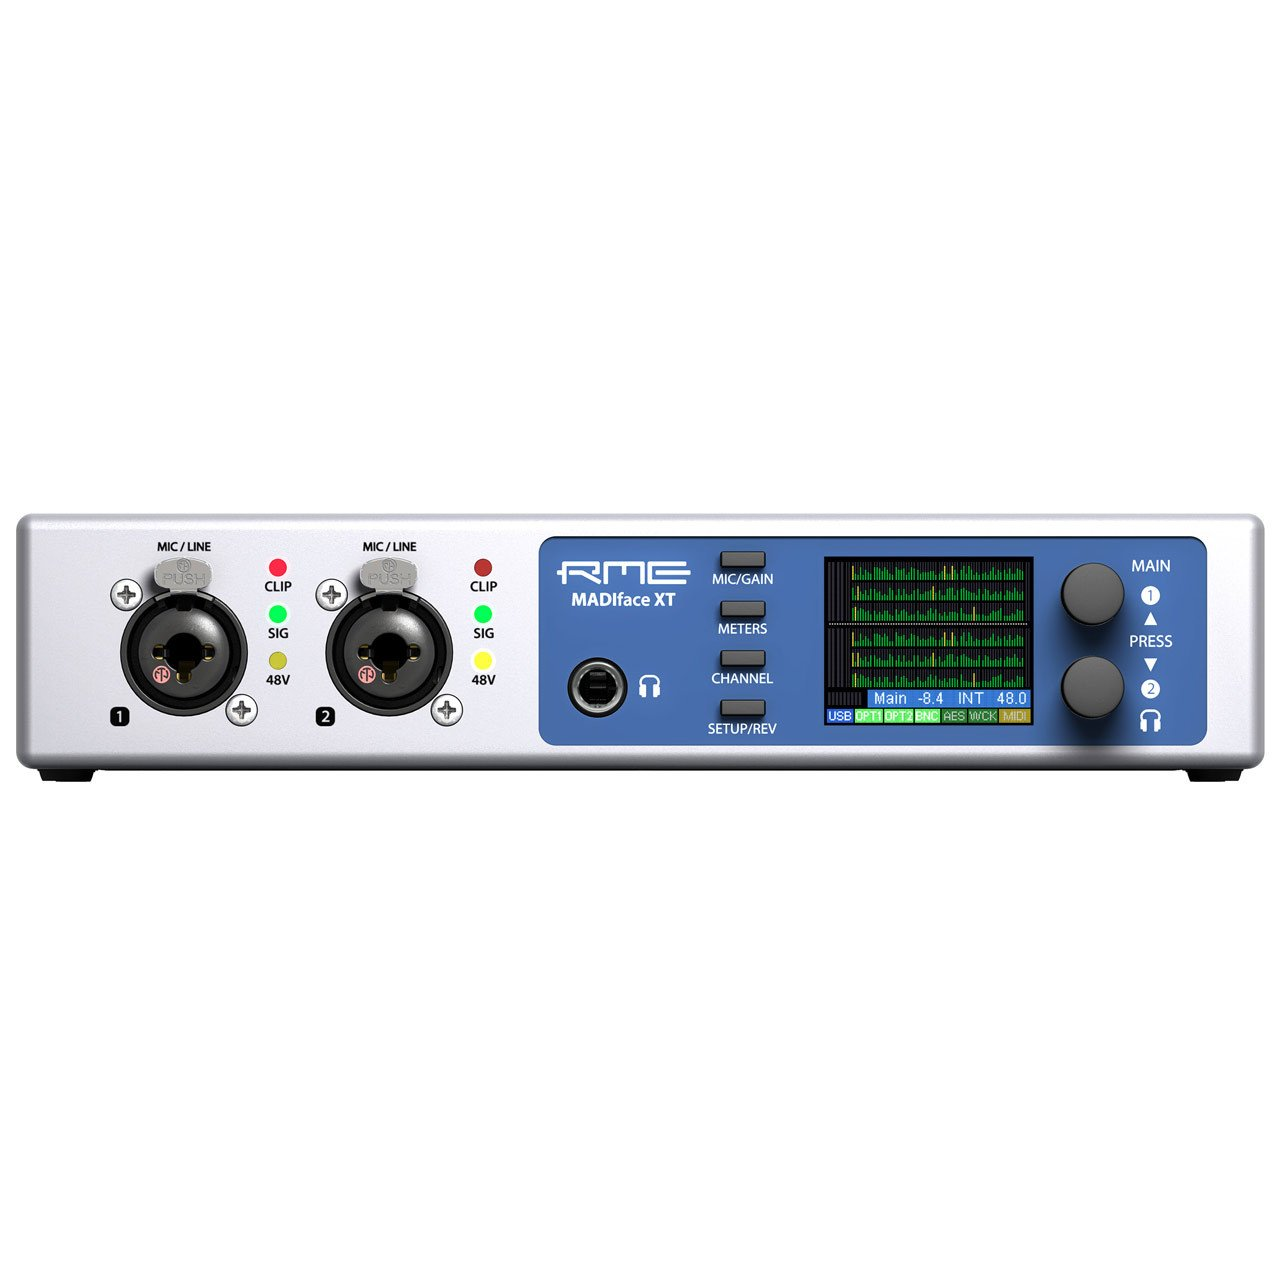 USB Audio Interfaces - RME MADIface XT - USB 3.0 & PCIe Compatible Audio Interface